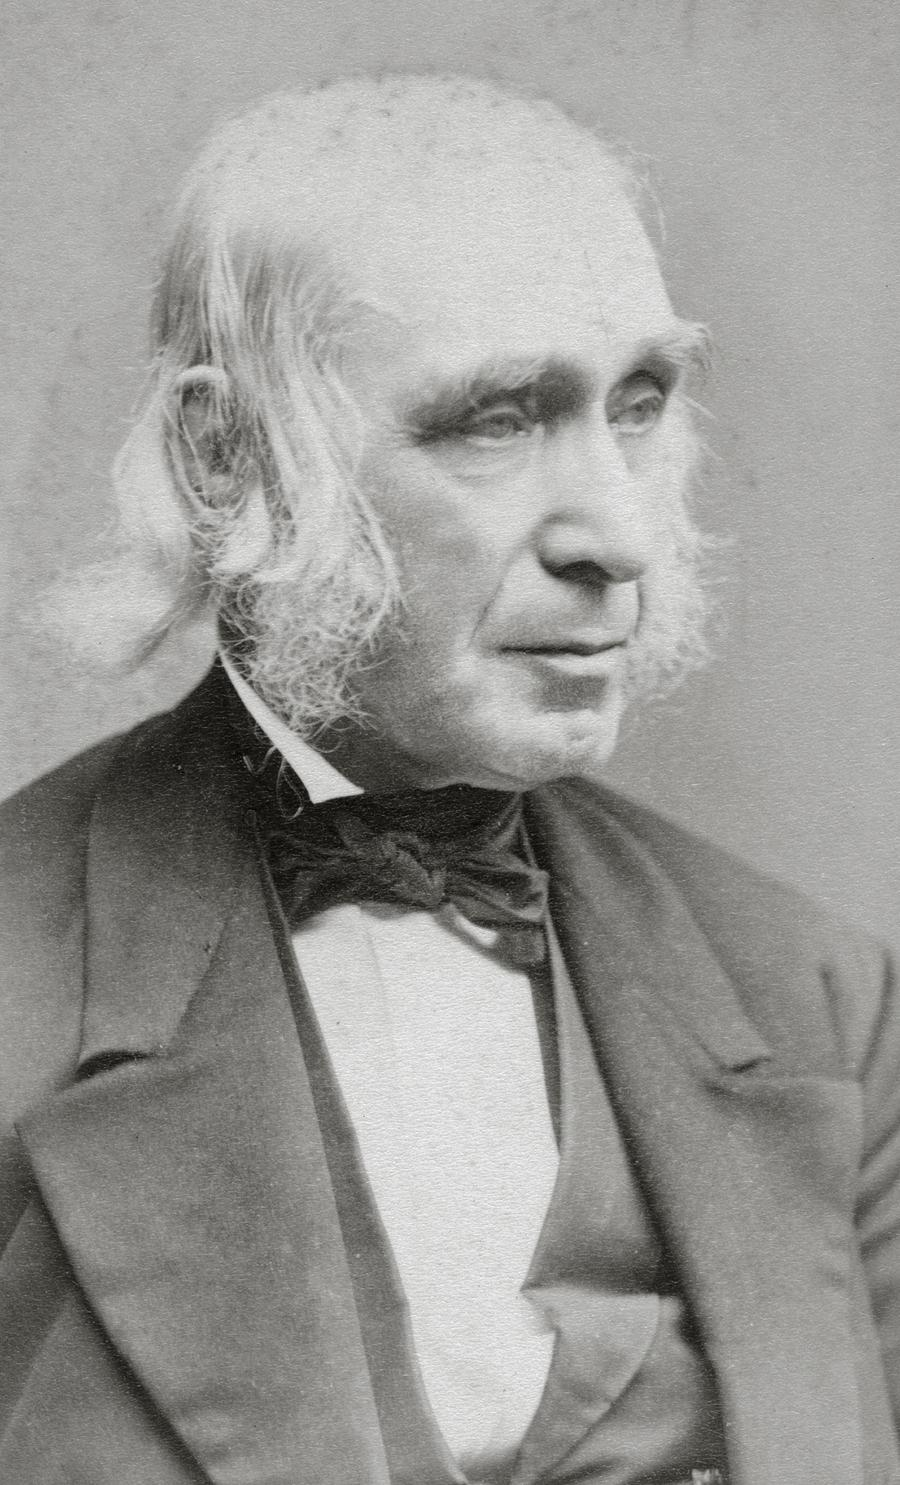 Alcott in a black suit and bow tie, facing slightly to his left